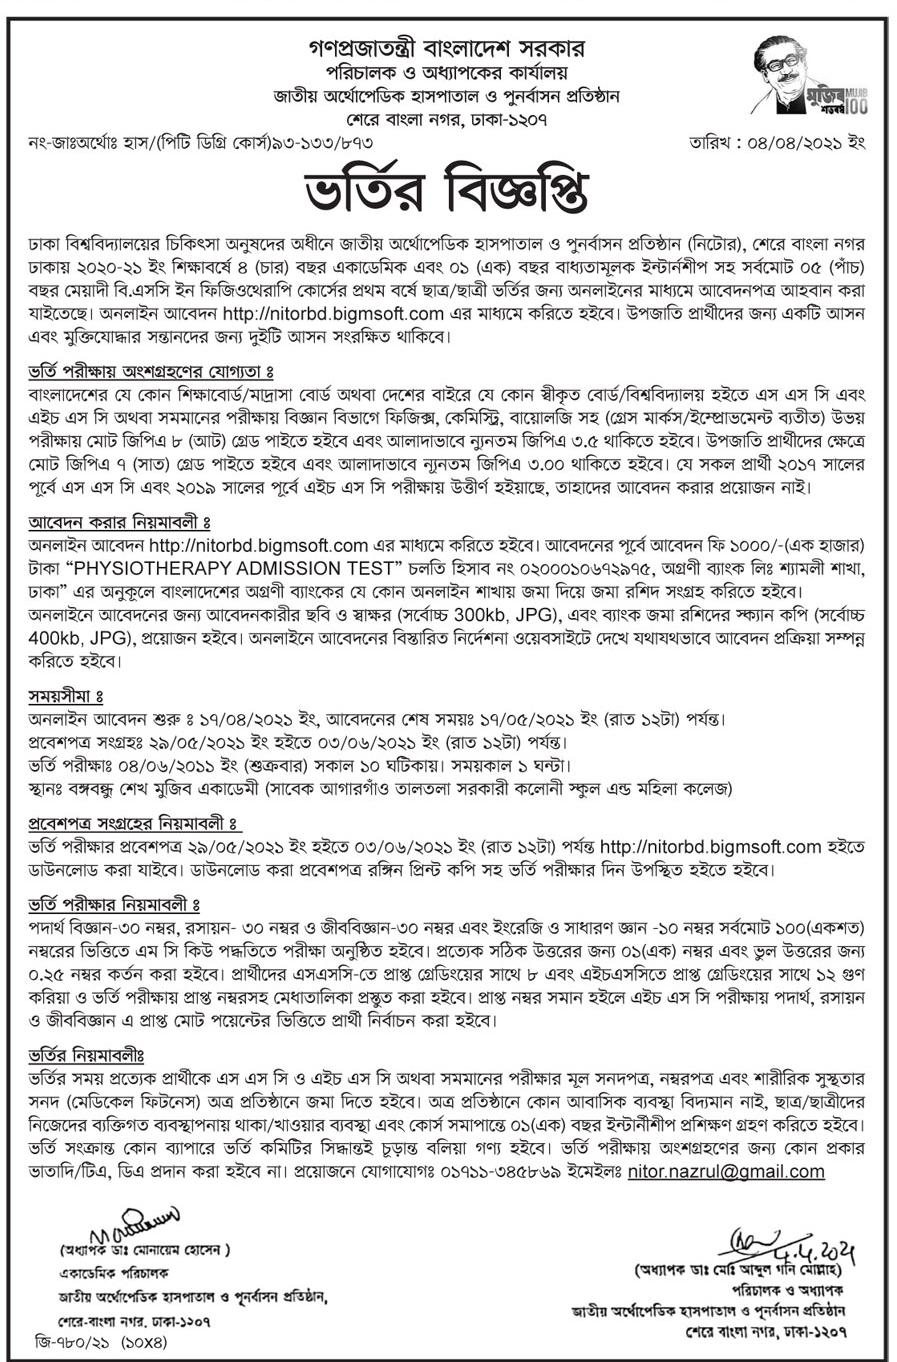 NITOR BSc in Physiotherapy Course Admission Circular 2021